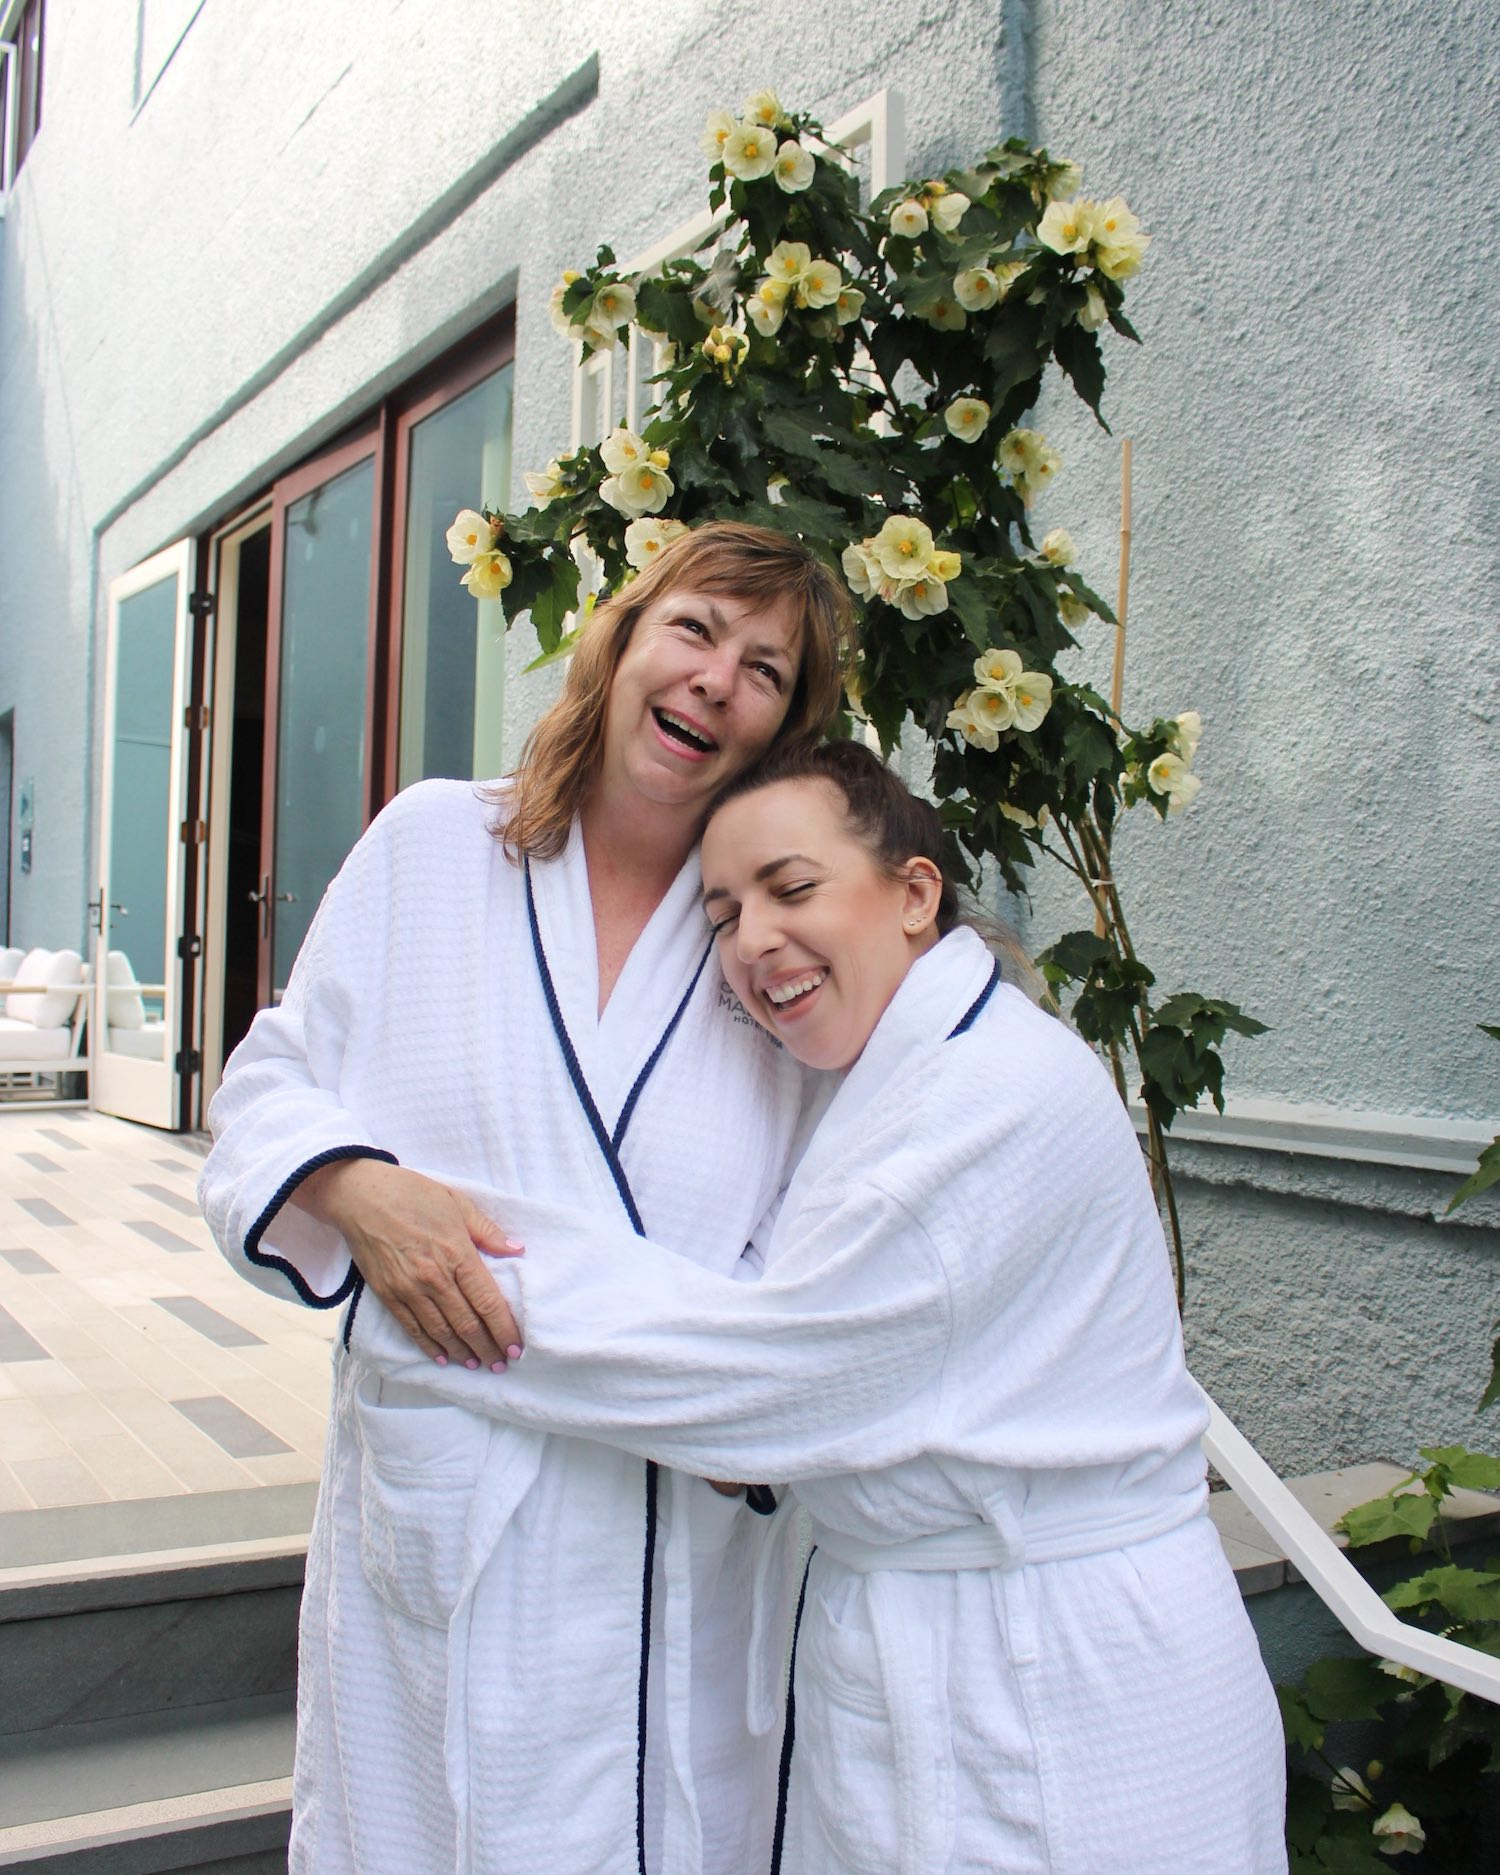 Mother Daughter Spa Day at Casa Madrona